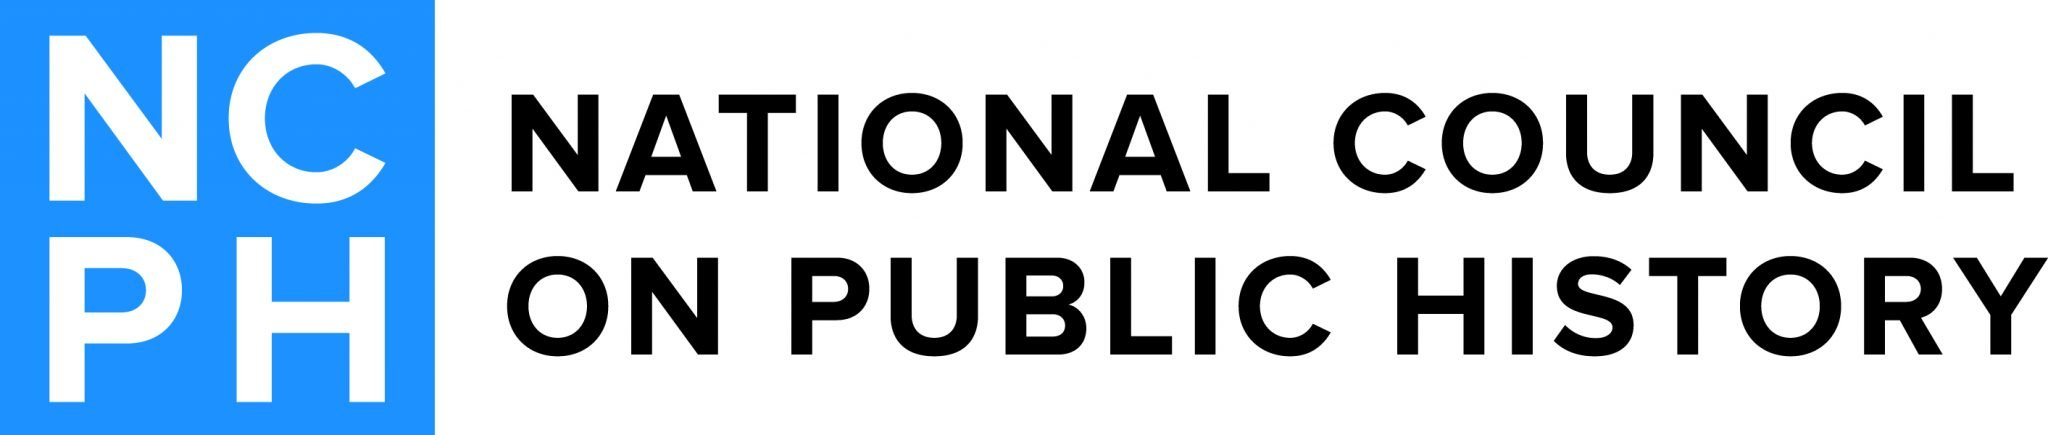 national-council-public-history